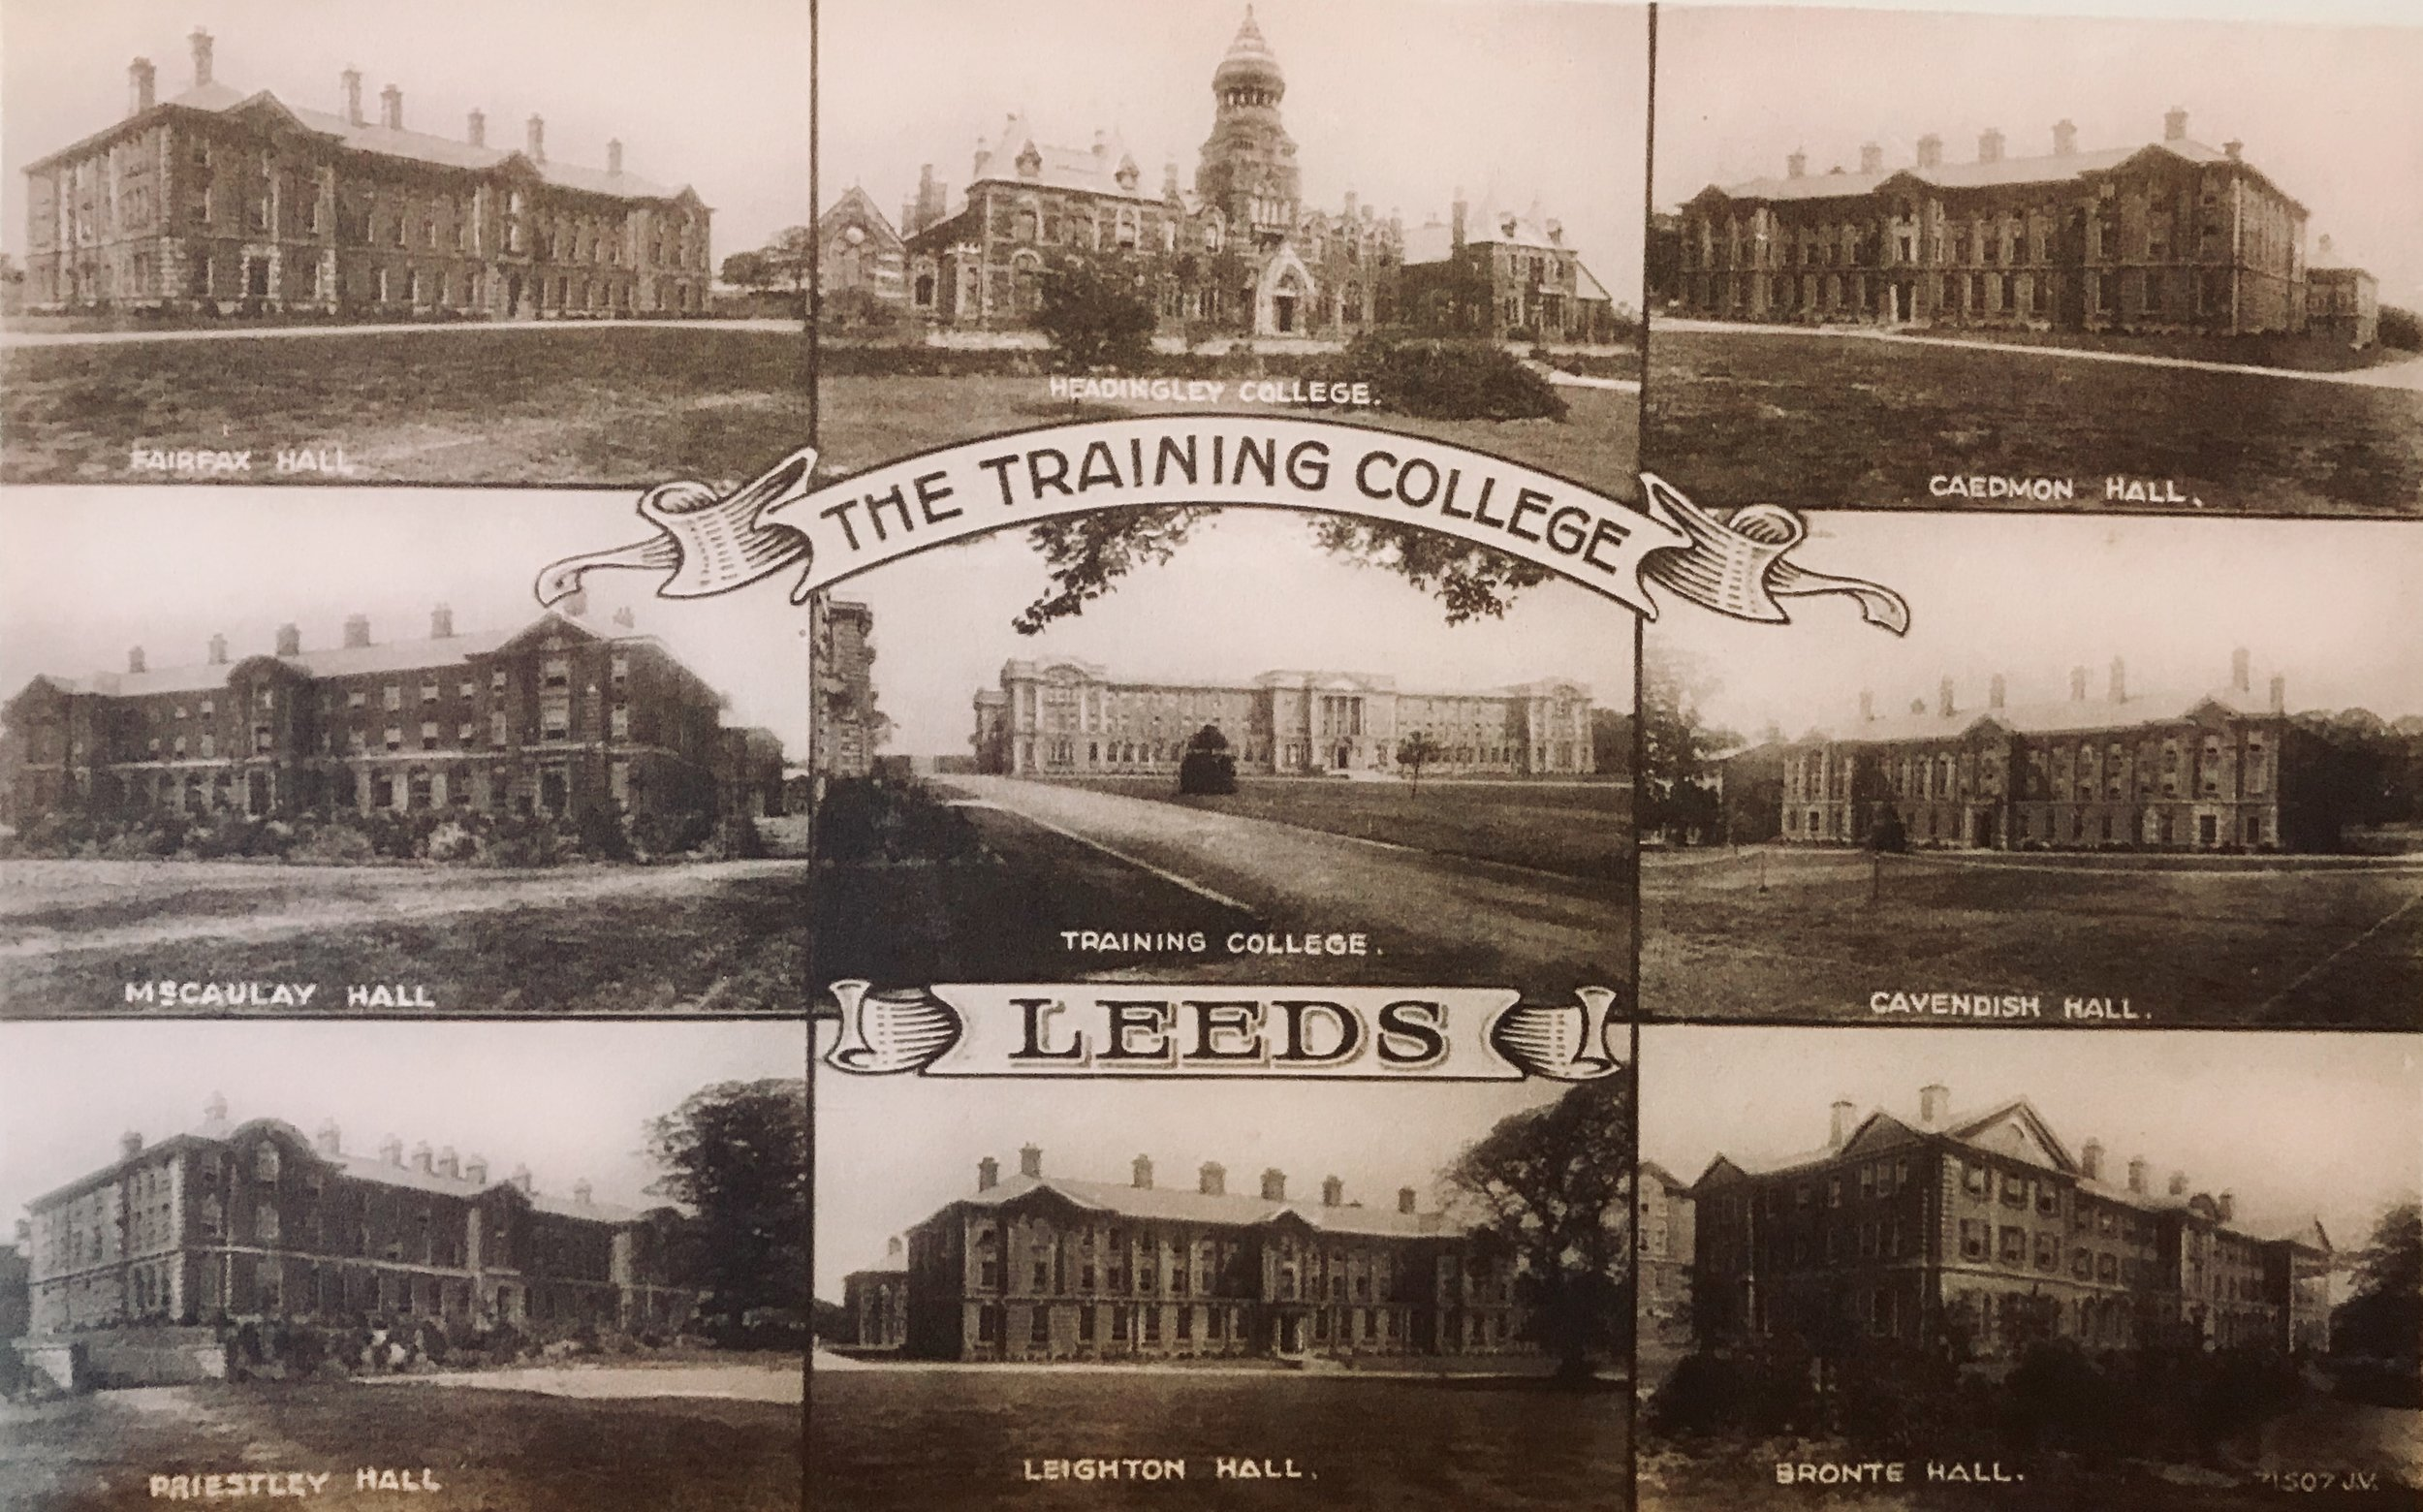 City of Leeds Training College, incorporating Wesleyan College